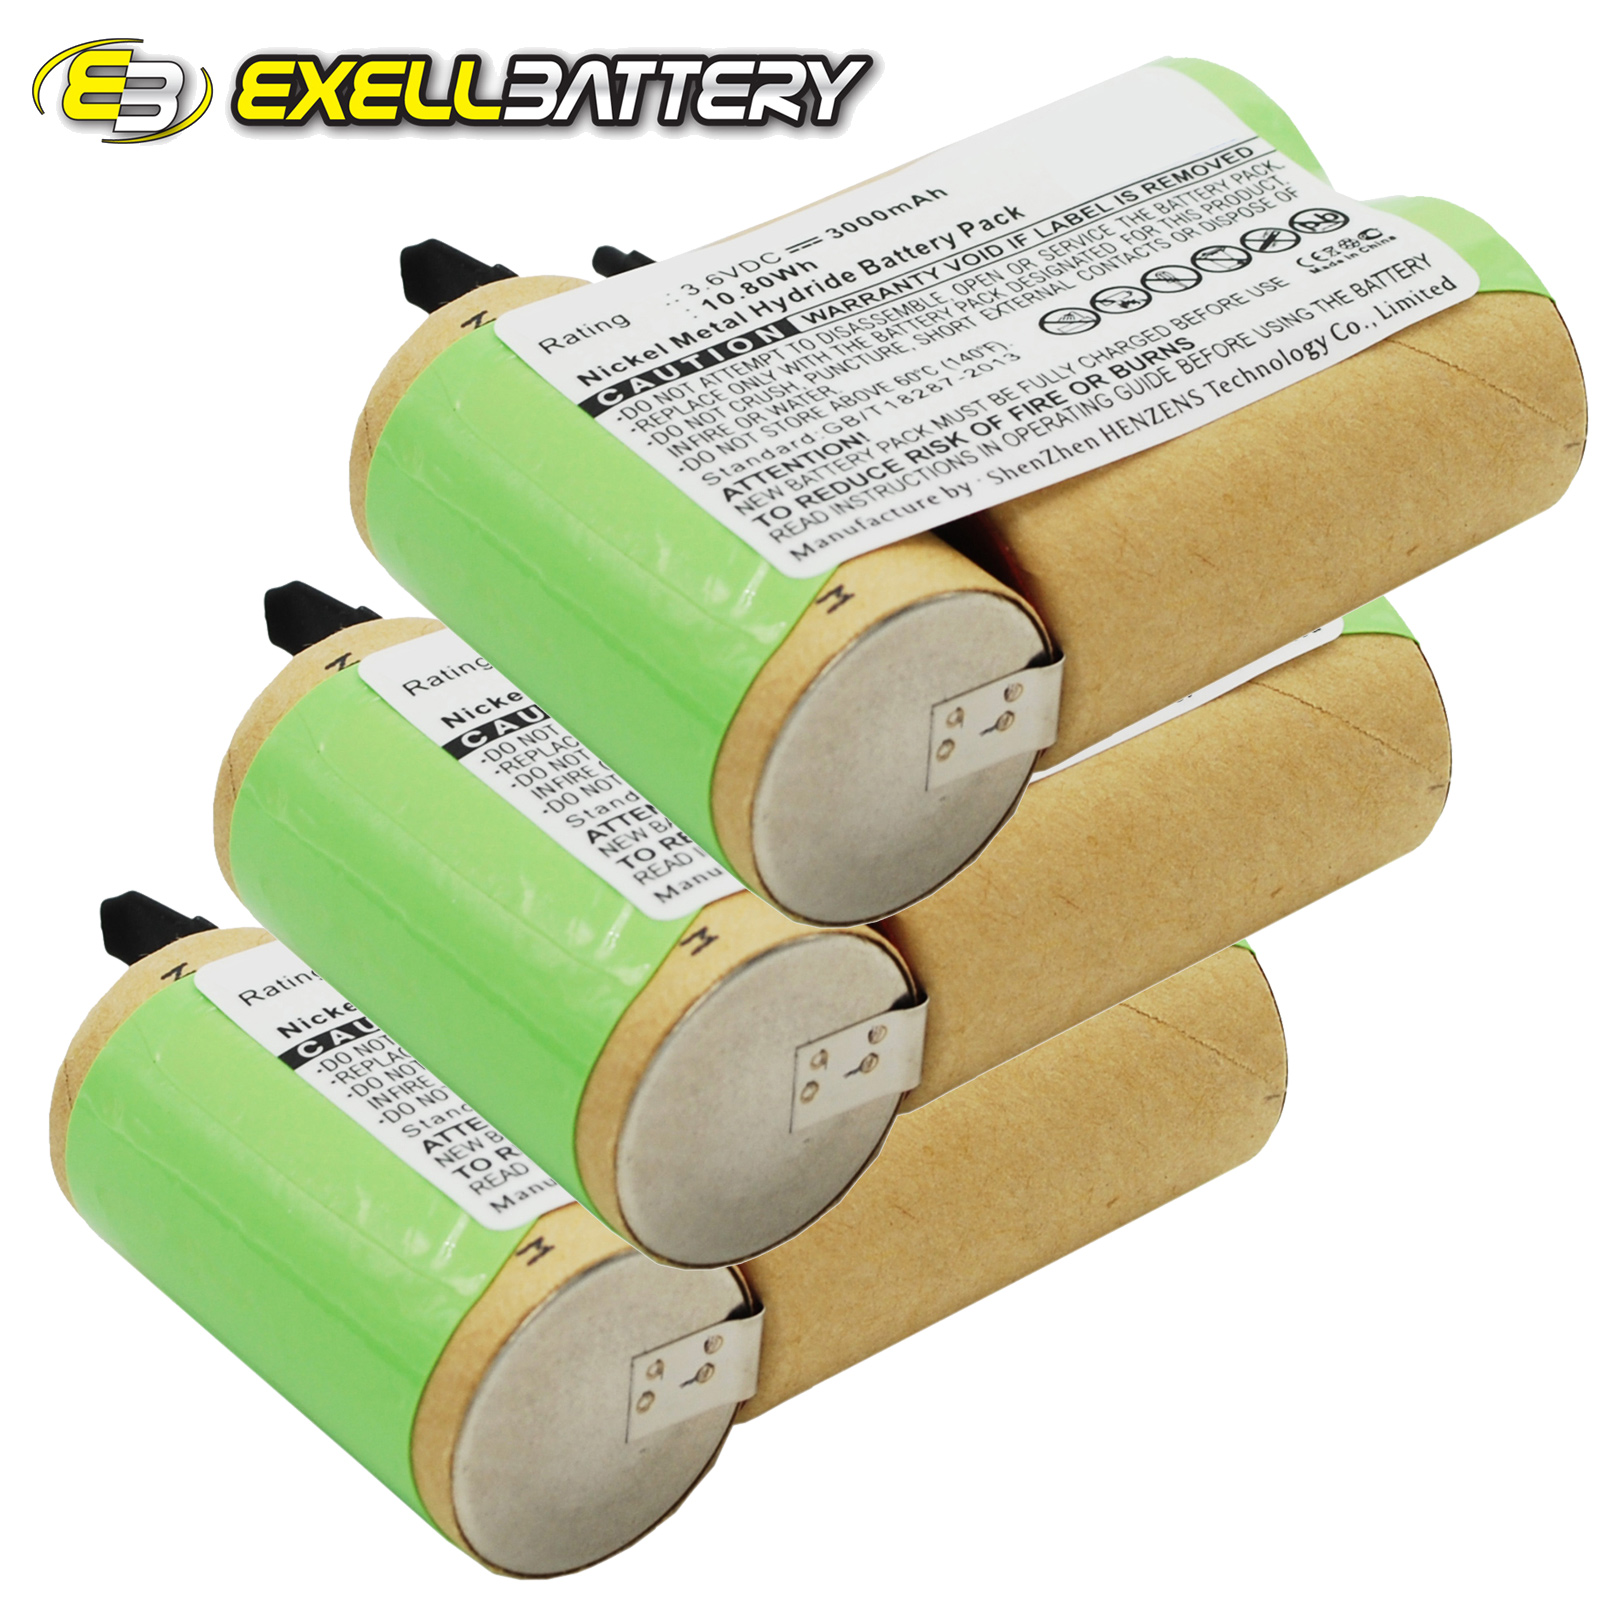 3x 3.6V Battery Fits BLACK & DECKER V3610 Rechargeable Po...